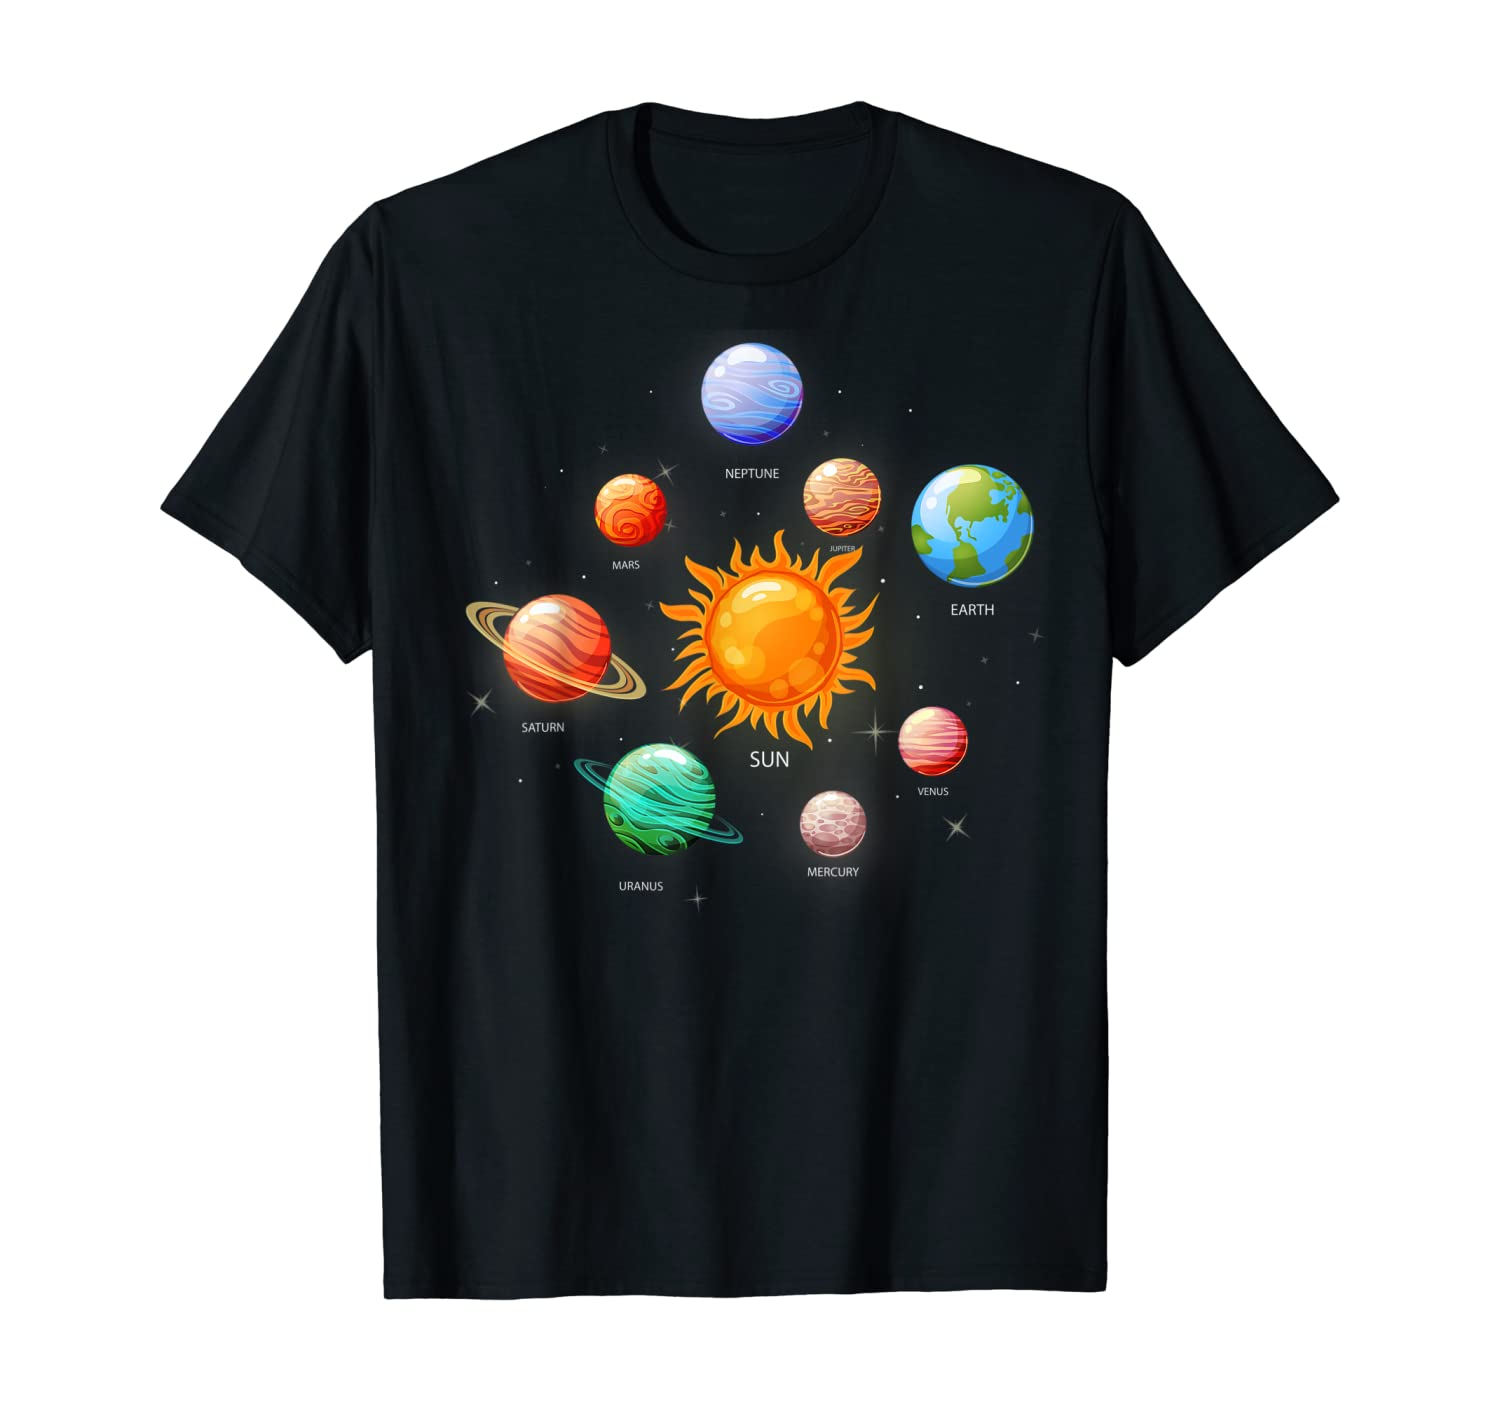 Solar System With Sun Planets Comets Earth Tee Space Geeks T-Shirt